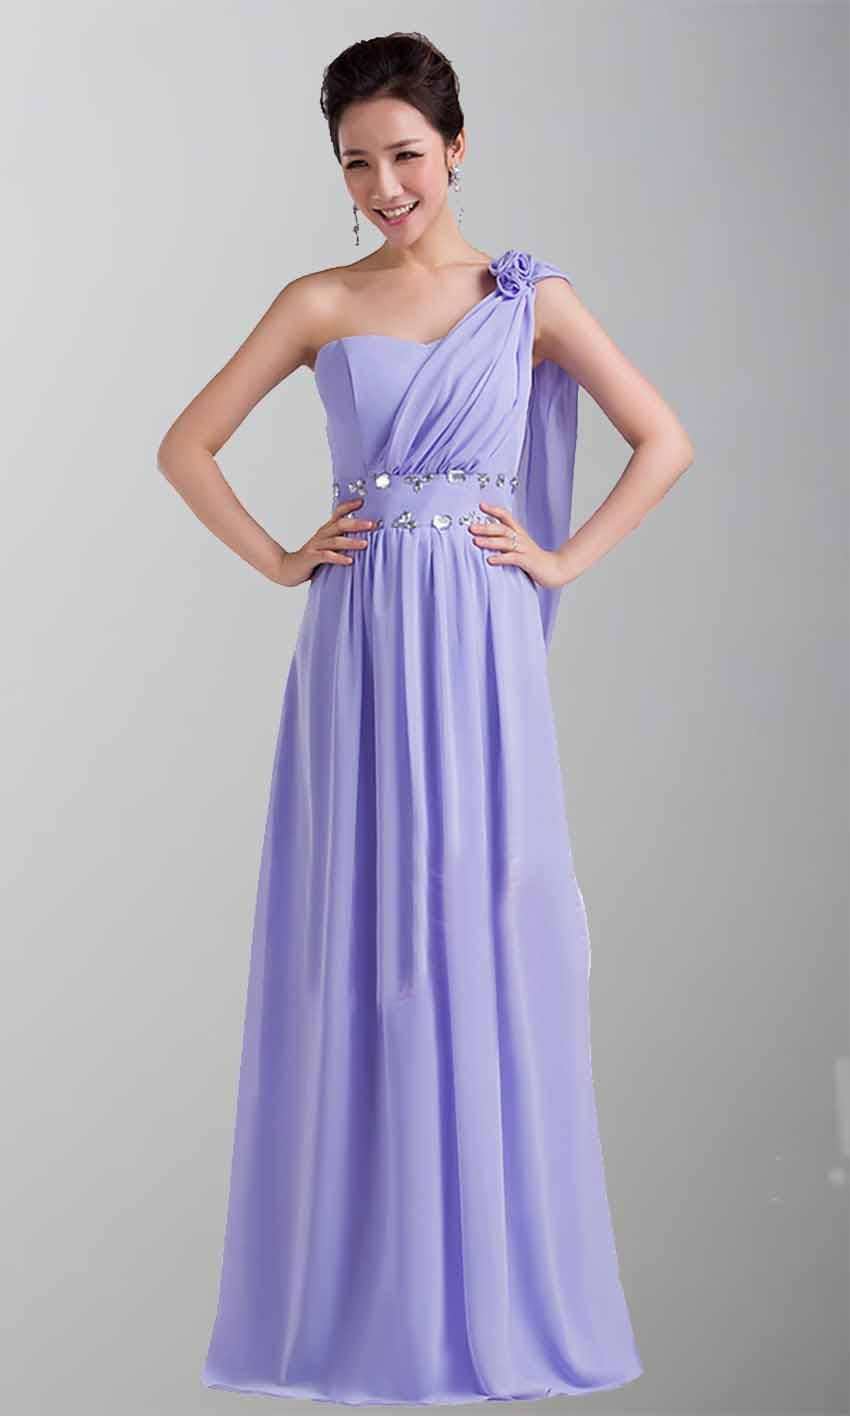 Inexpensive Navy Blue One Shoulder Dress For Grade Prom KSP071 ...